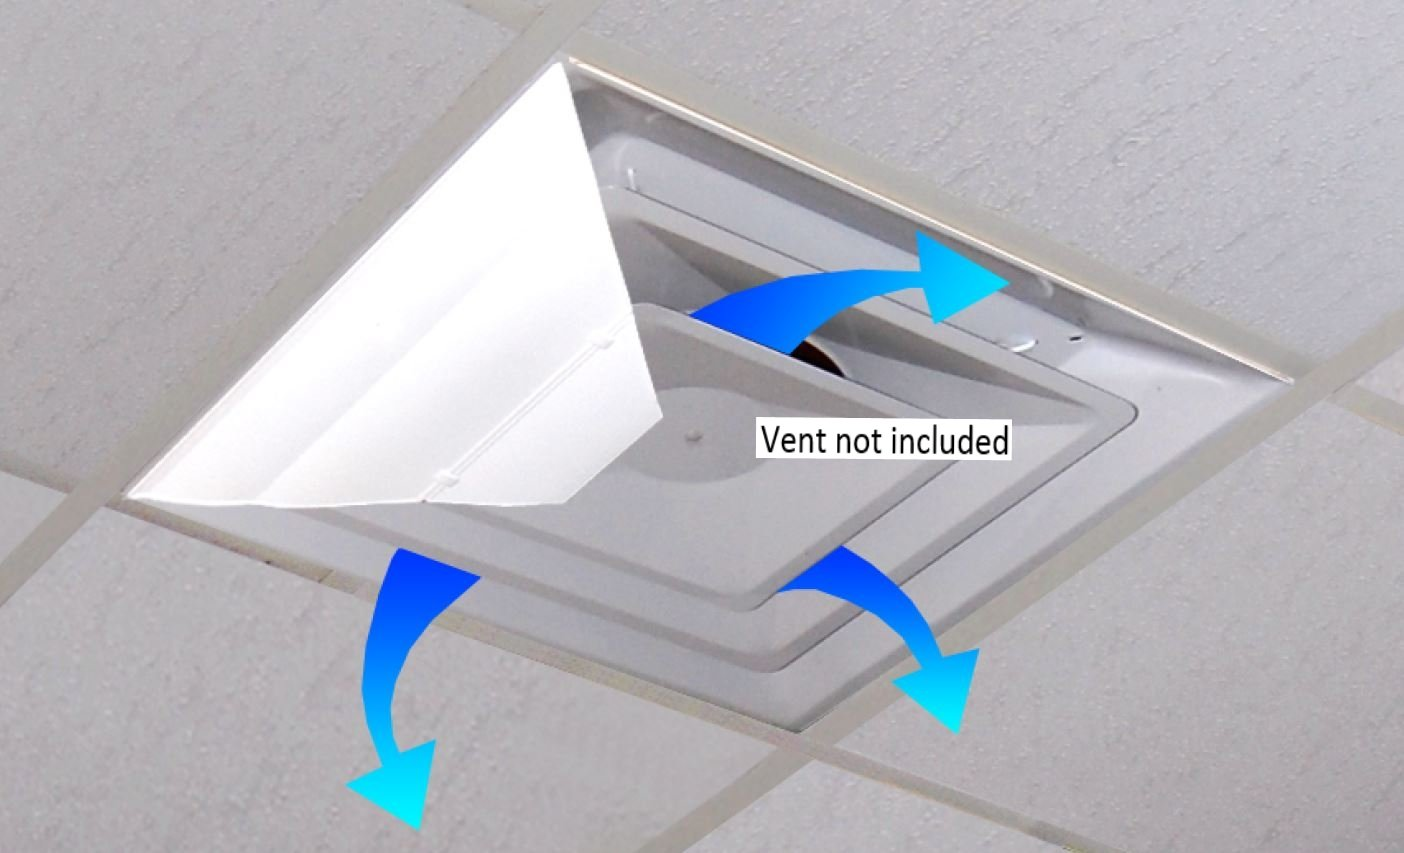 "AIRVISOR Air Deflector for Office Ceiling Vents 24""x 24"" (Set of 1)"